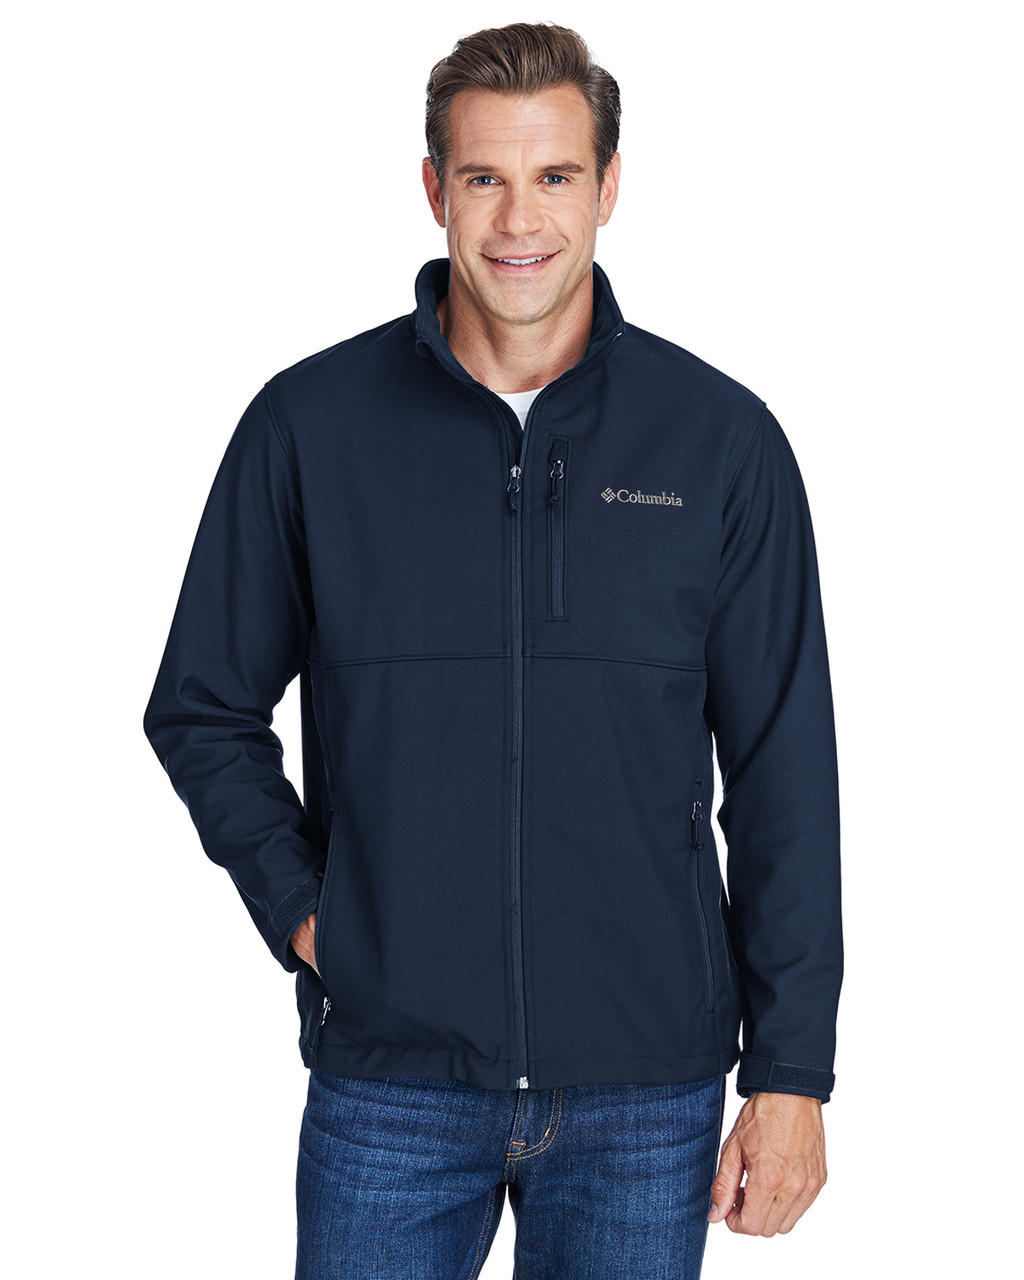 Collegiate Navy - C6044 Columbia Men's Ascender™ Soft Shell Jacket | BlankClothing.ca